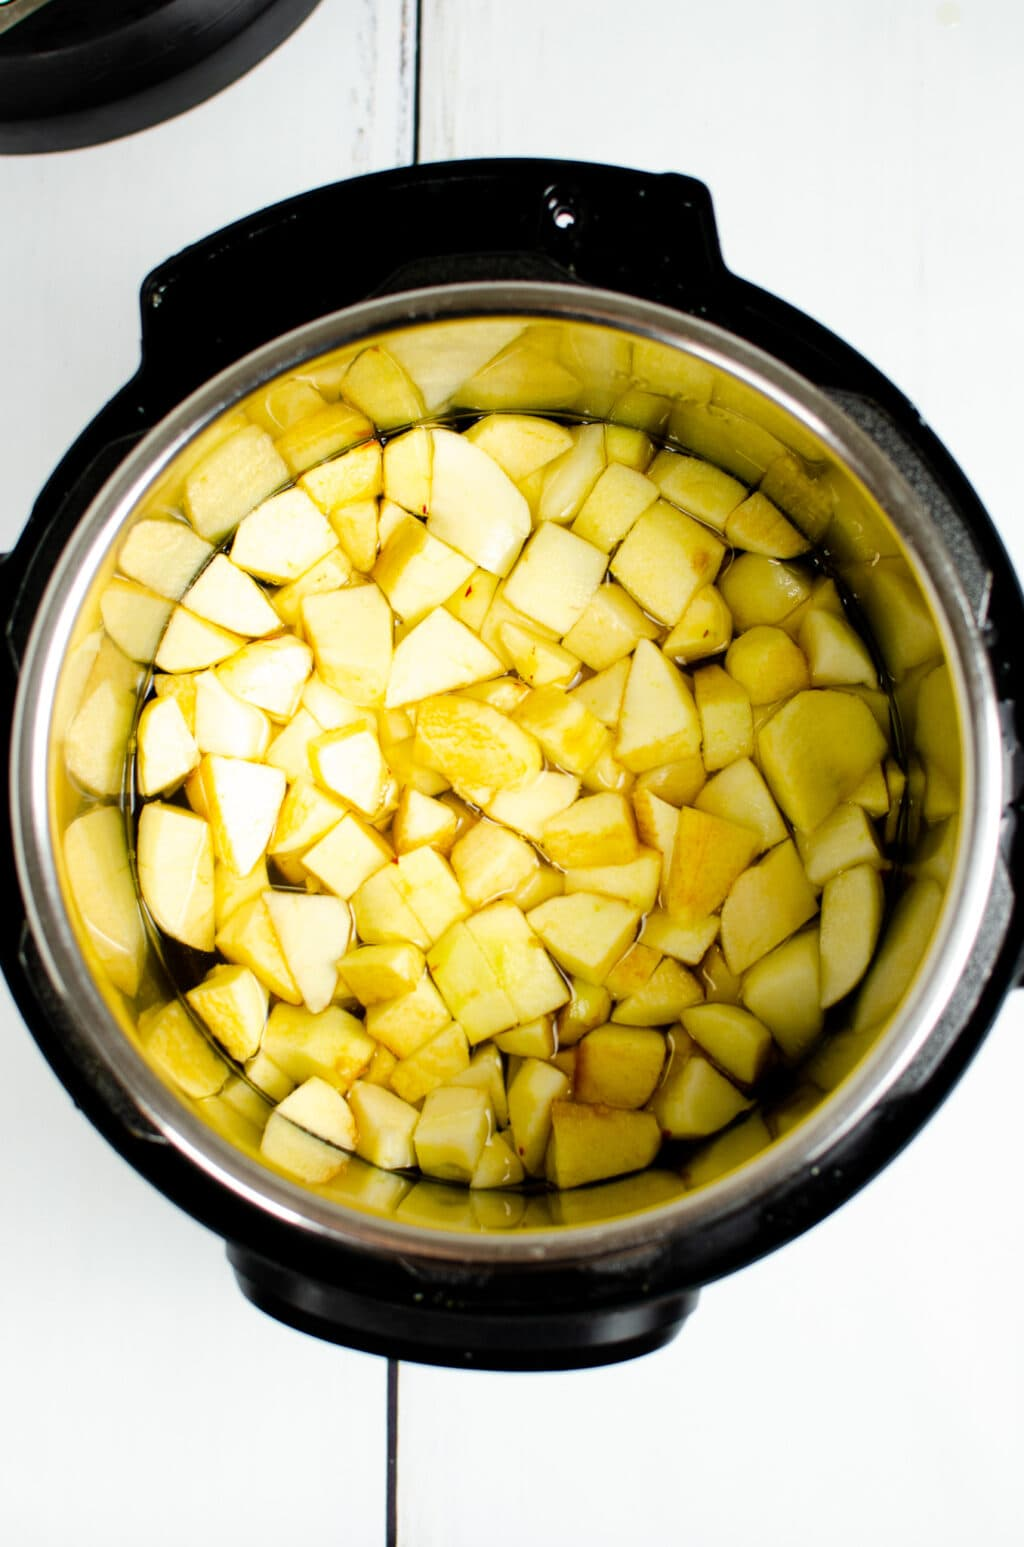 cut apple pieces in water inside an Instant Pot